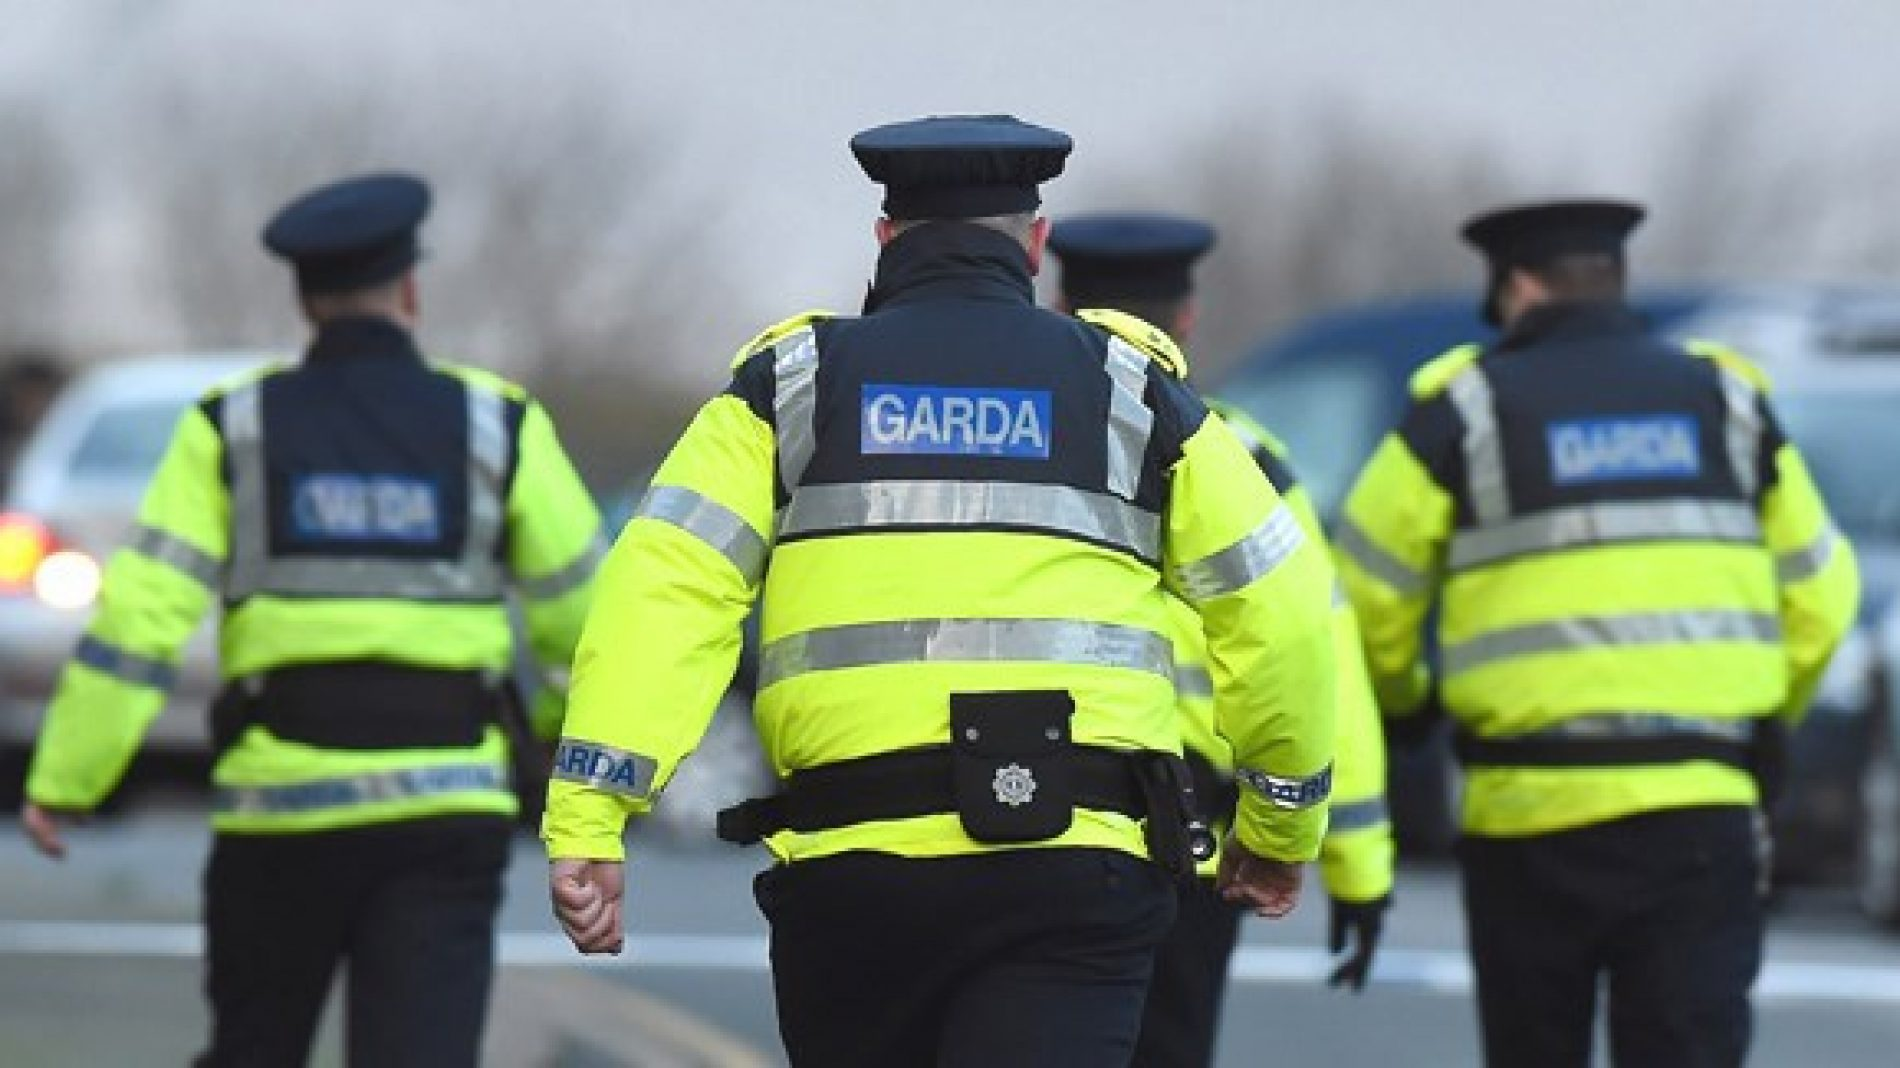 A group of gardaí with their backs to the camera